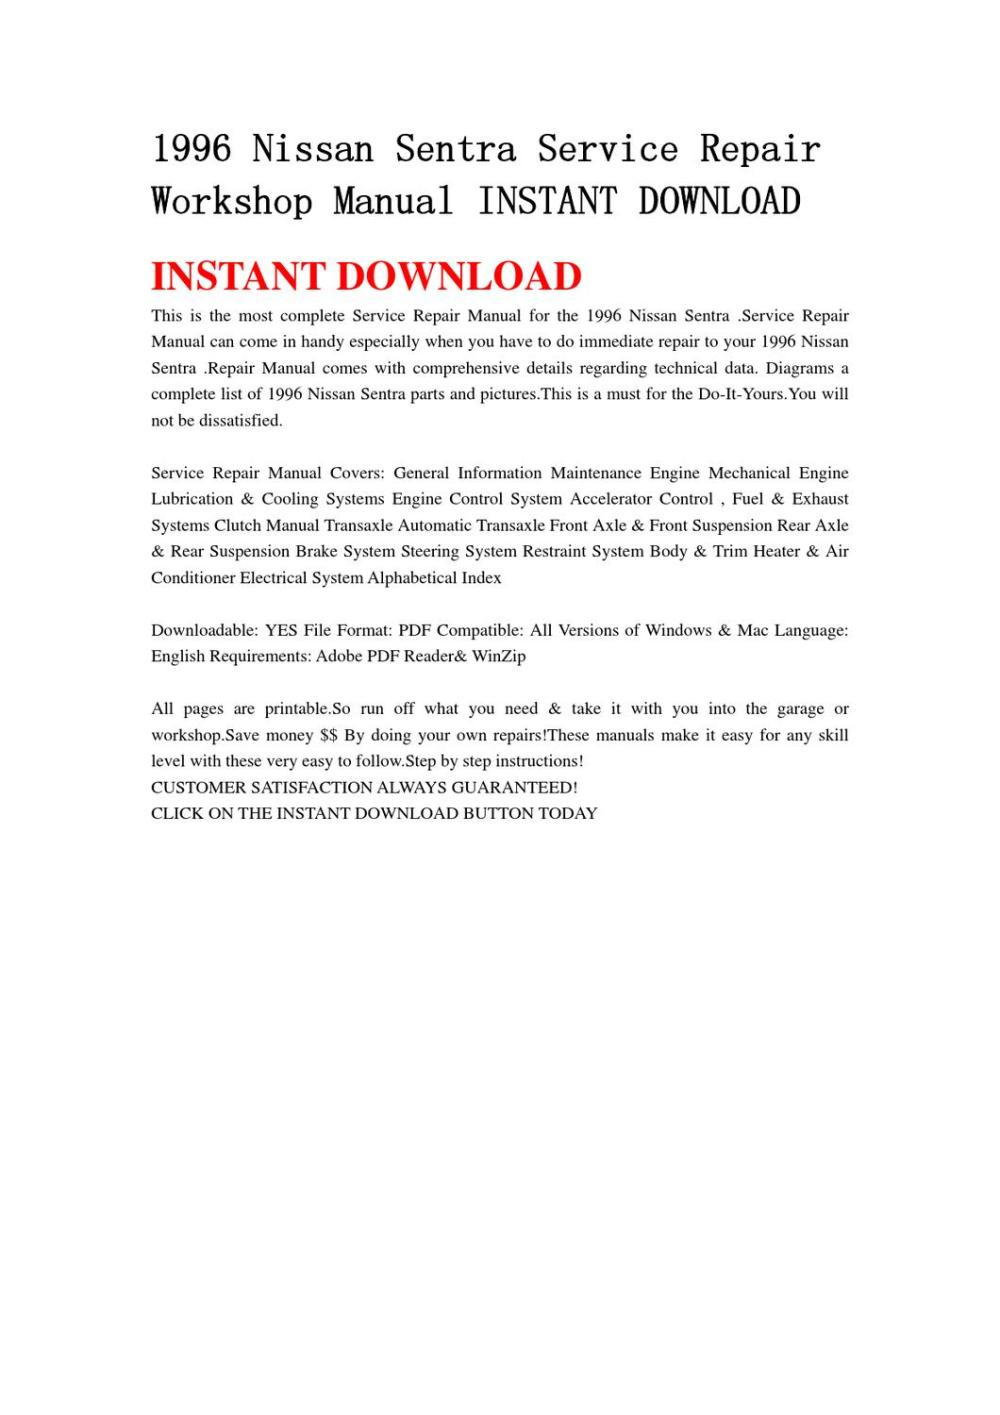 medium resolution of 1996 nissan sentra service repair workshop manual instant download by lin leiww issuu